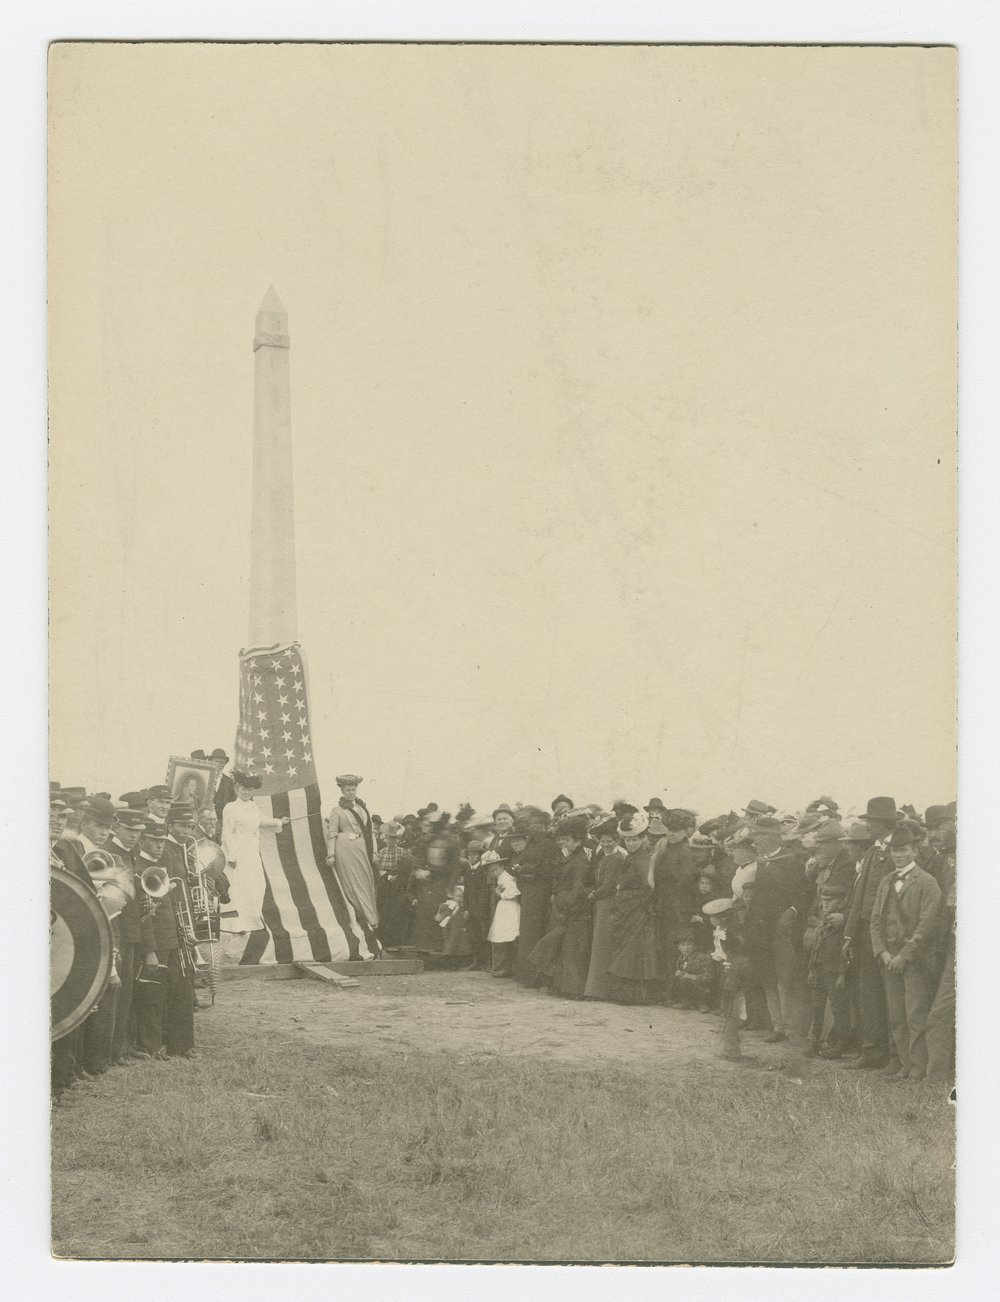 Unveiling the Pike monument at Pawnee Village, Republic County, Kansas - 3